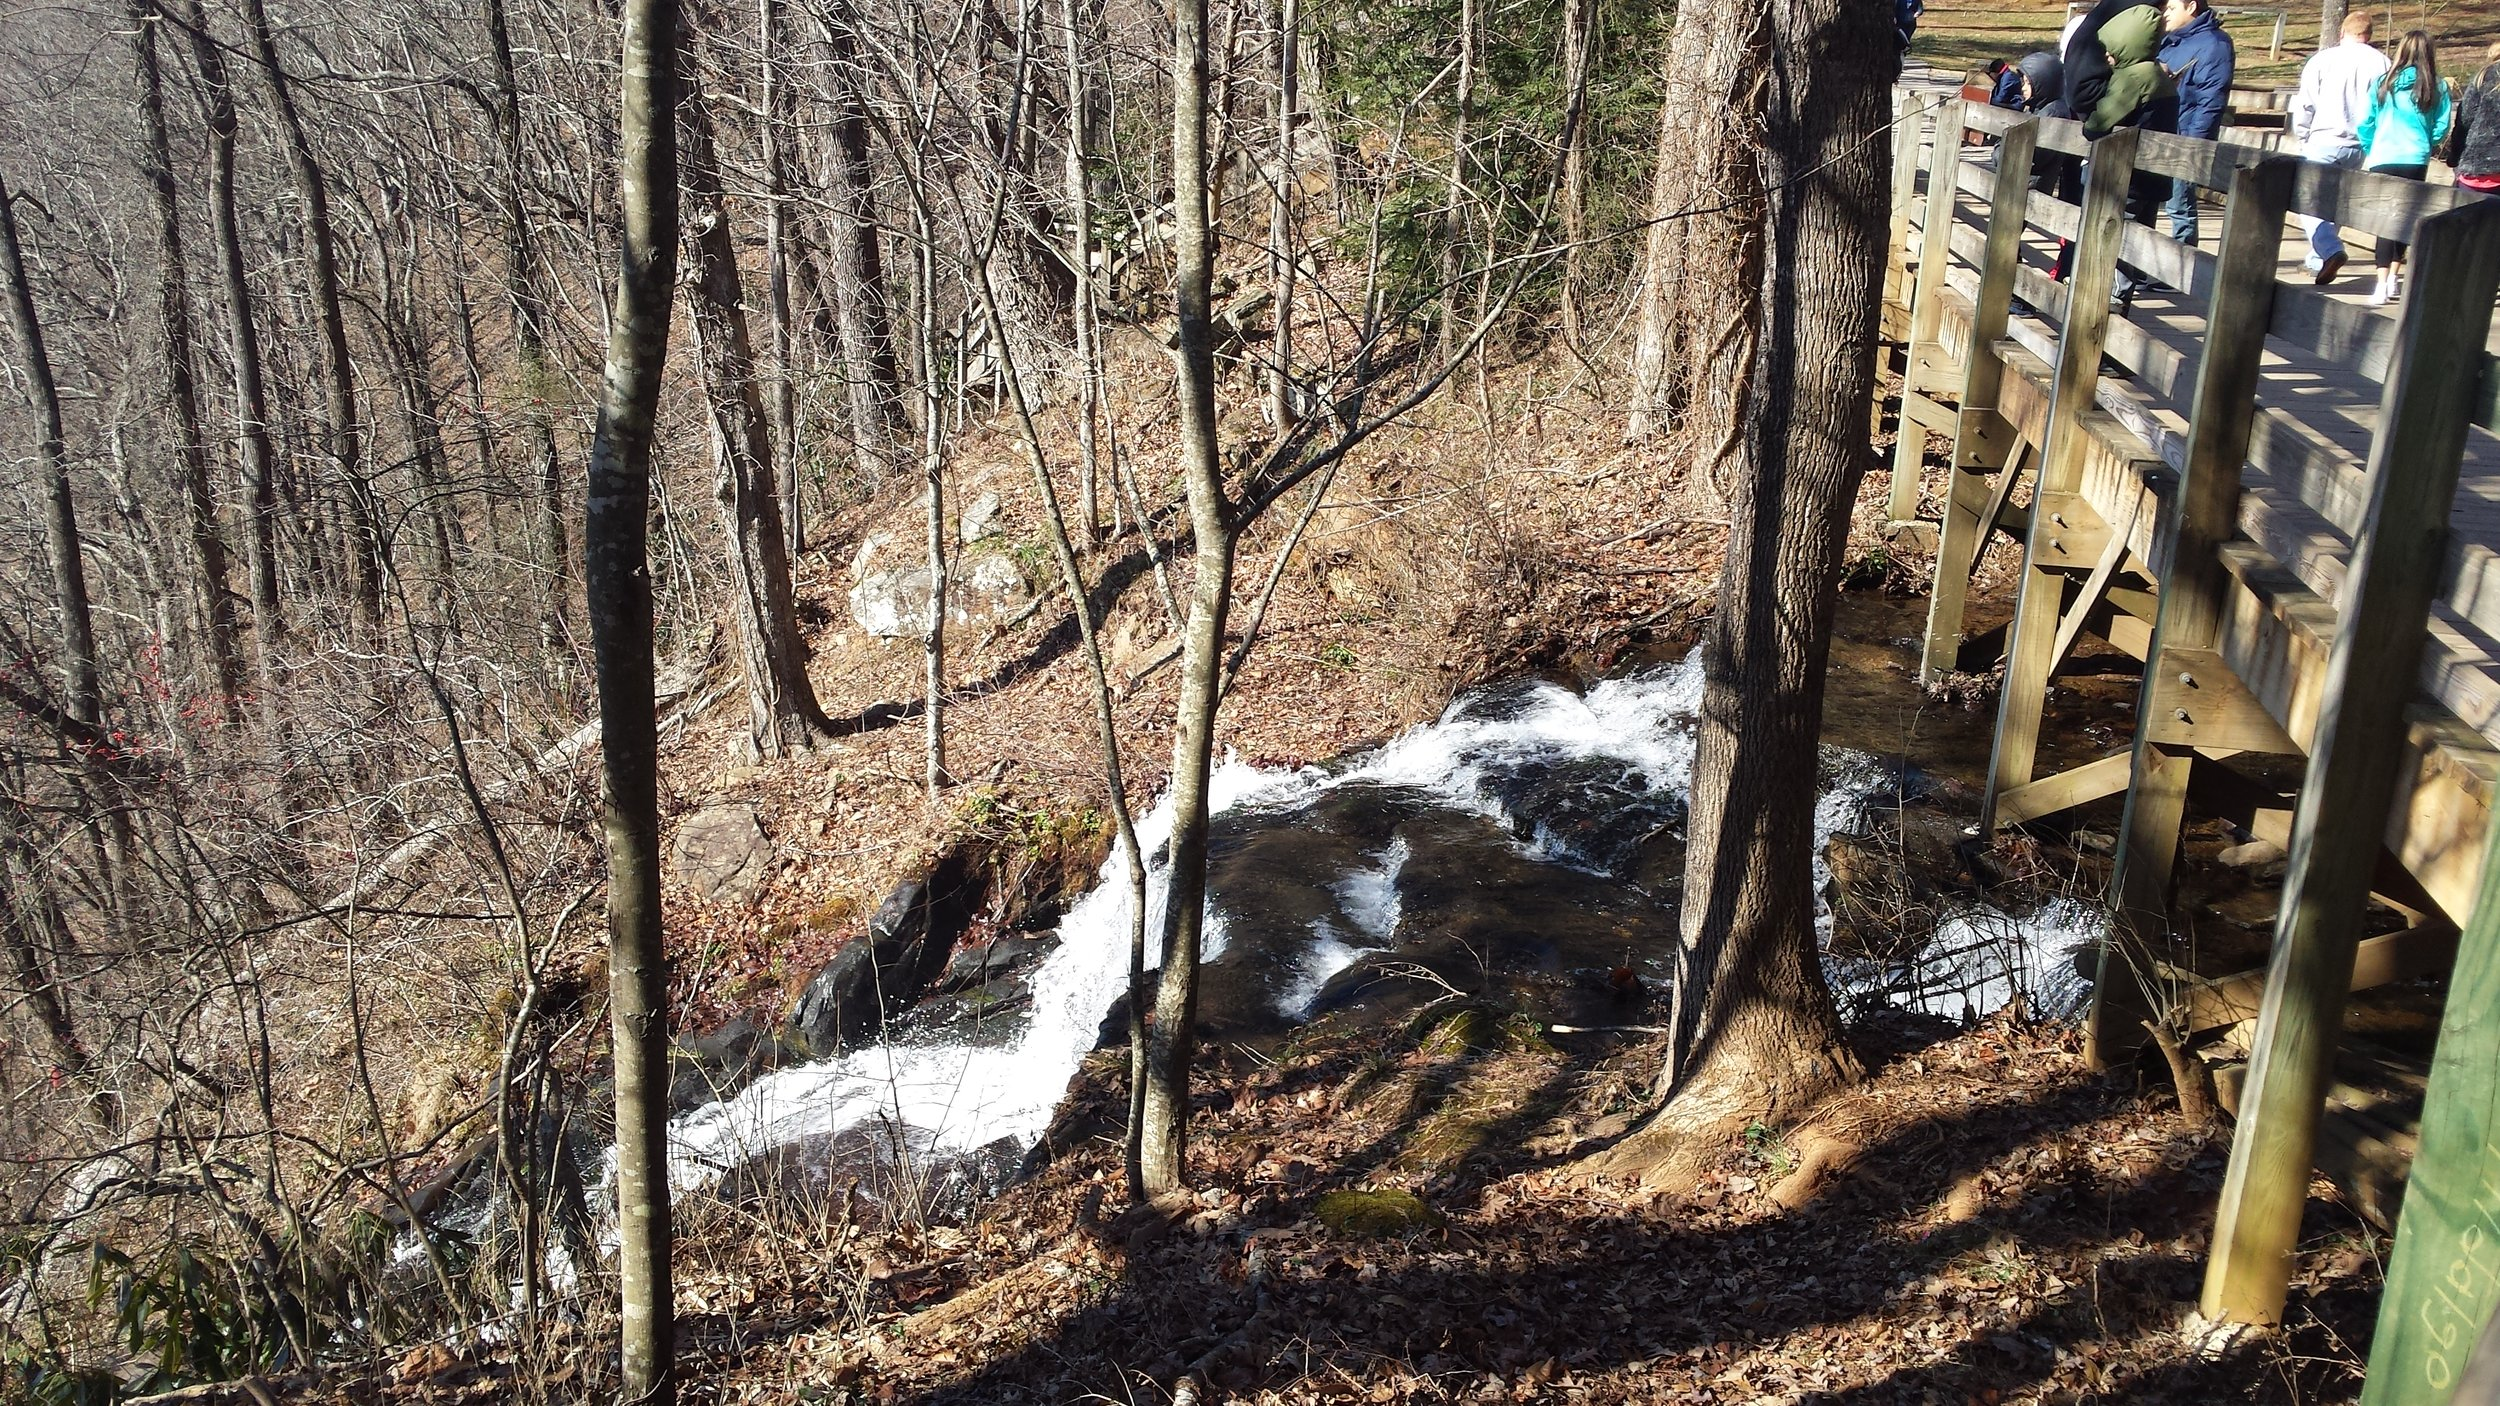 Top of Amicalola Falls across from campground.